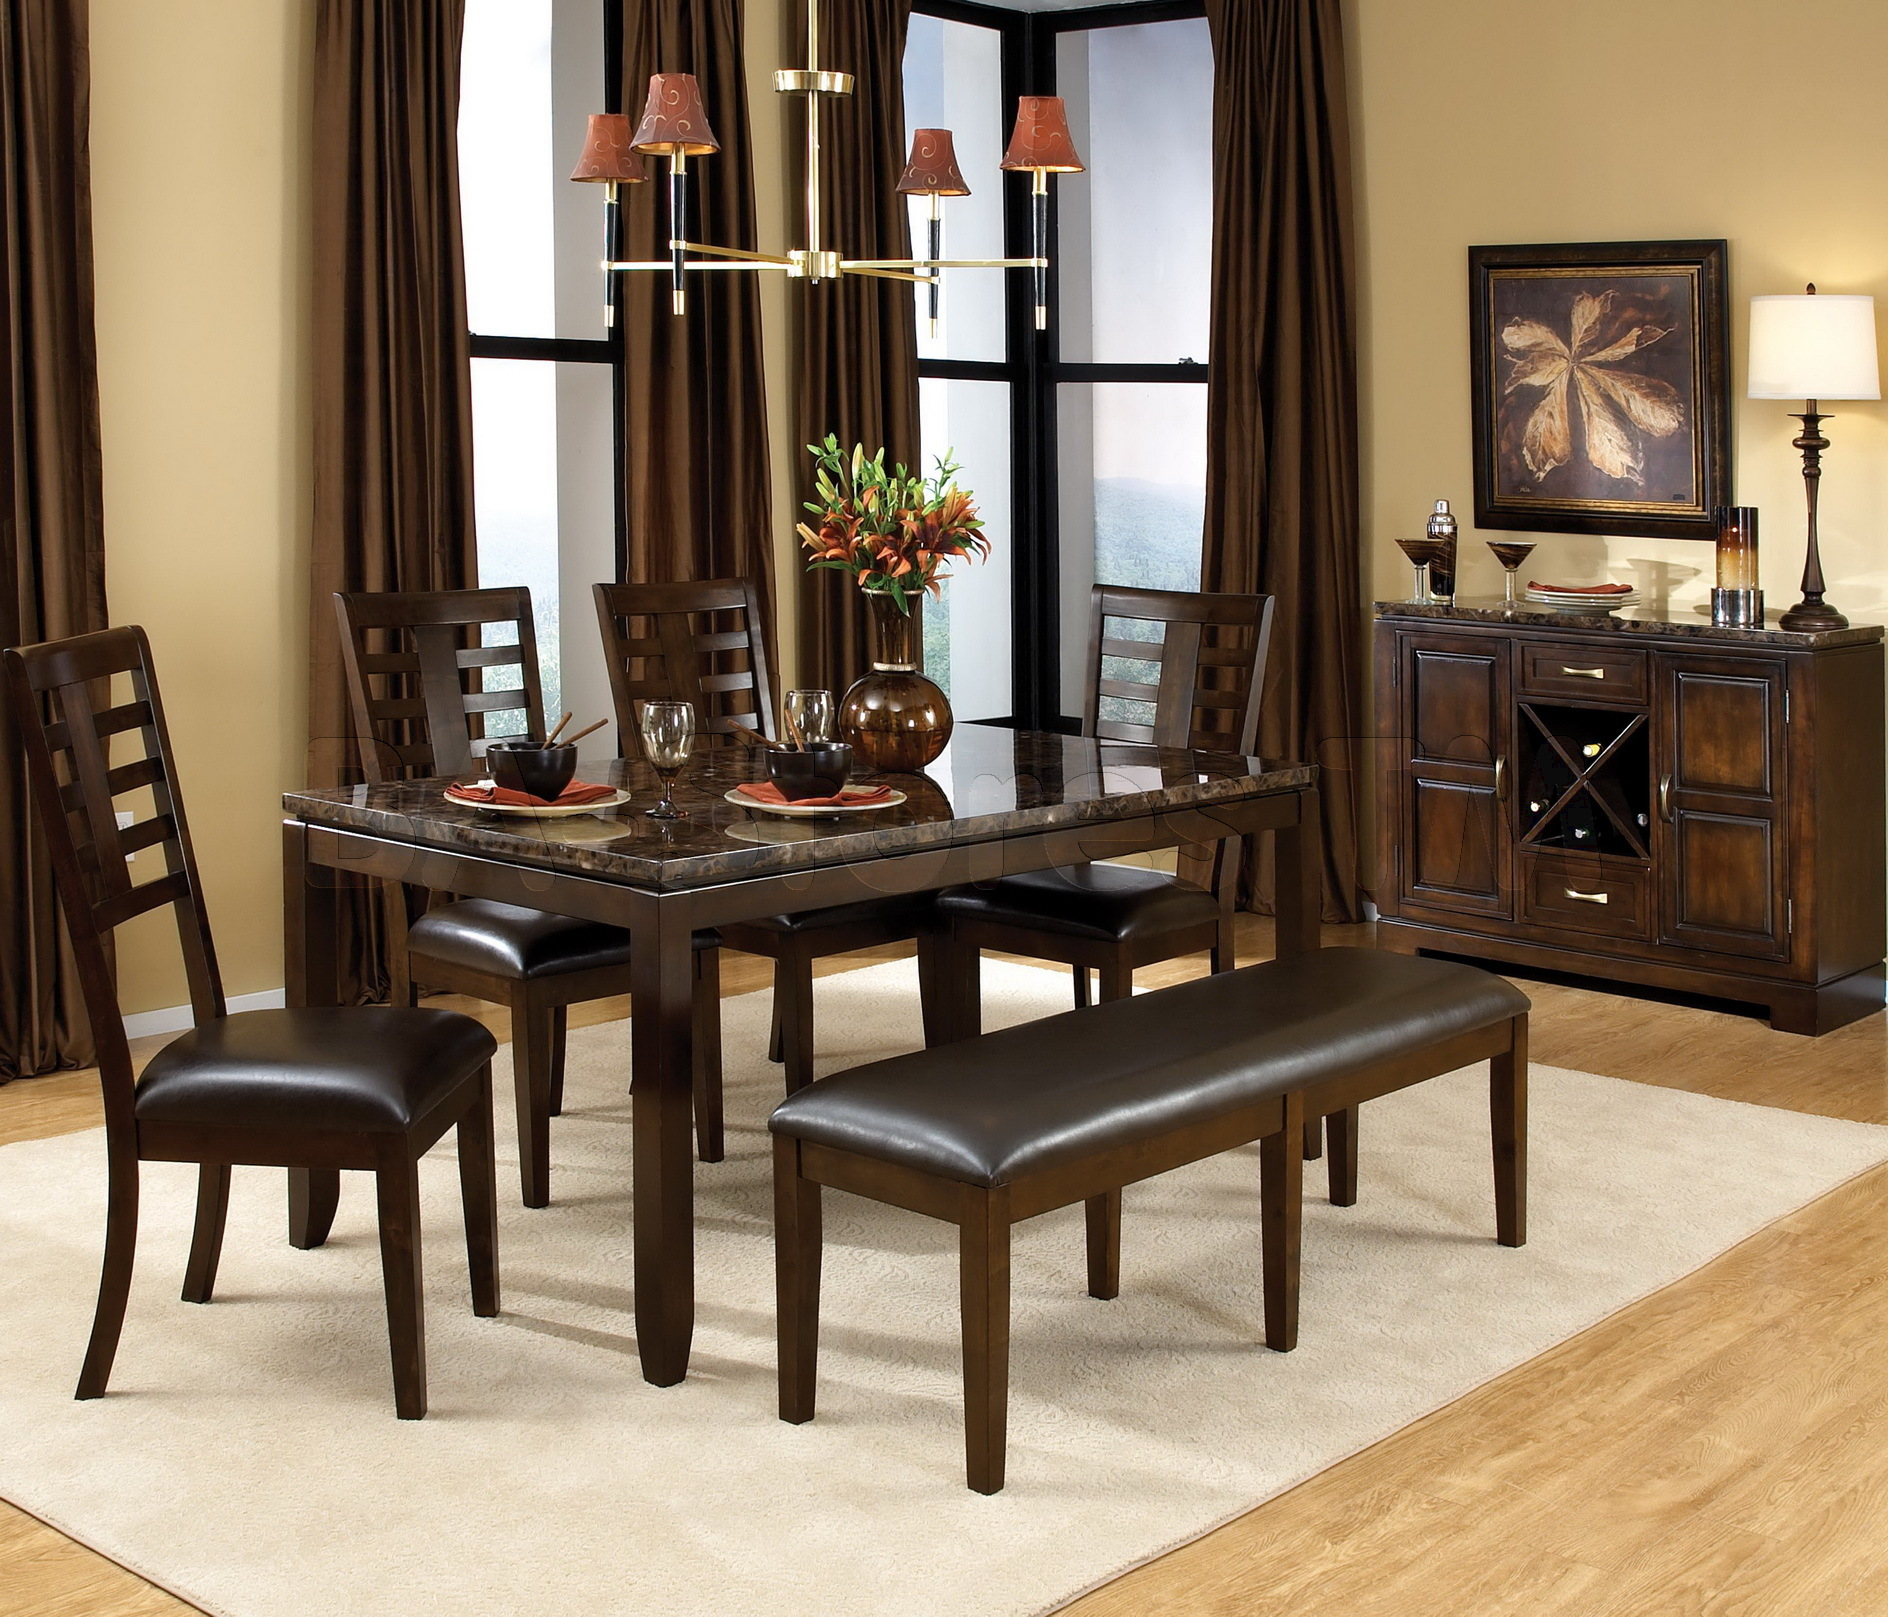 Dining Room Tables: Dining Room Table With Bench Seat